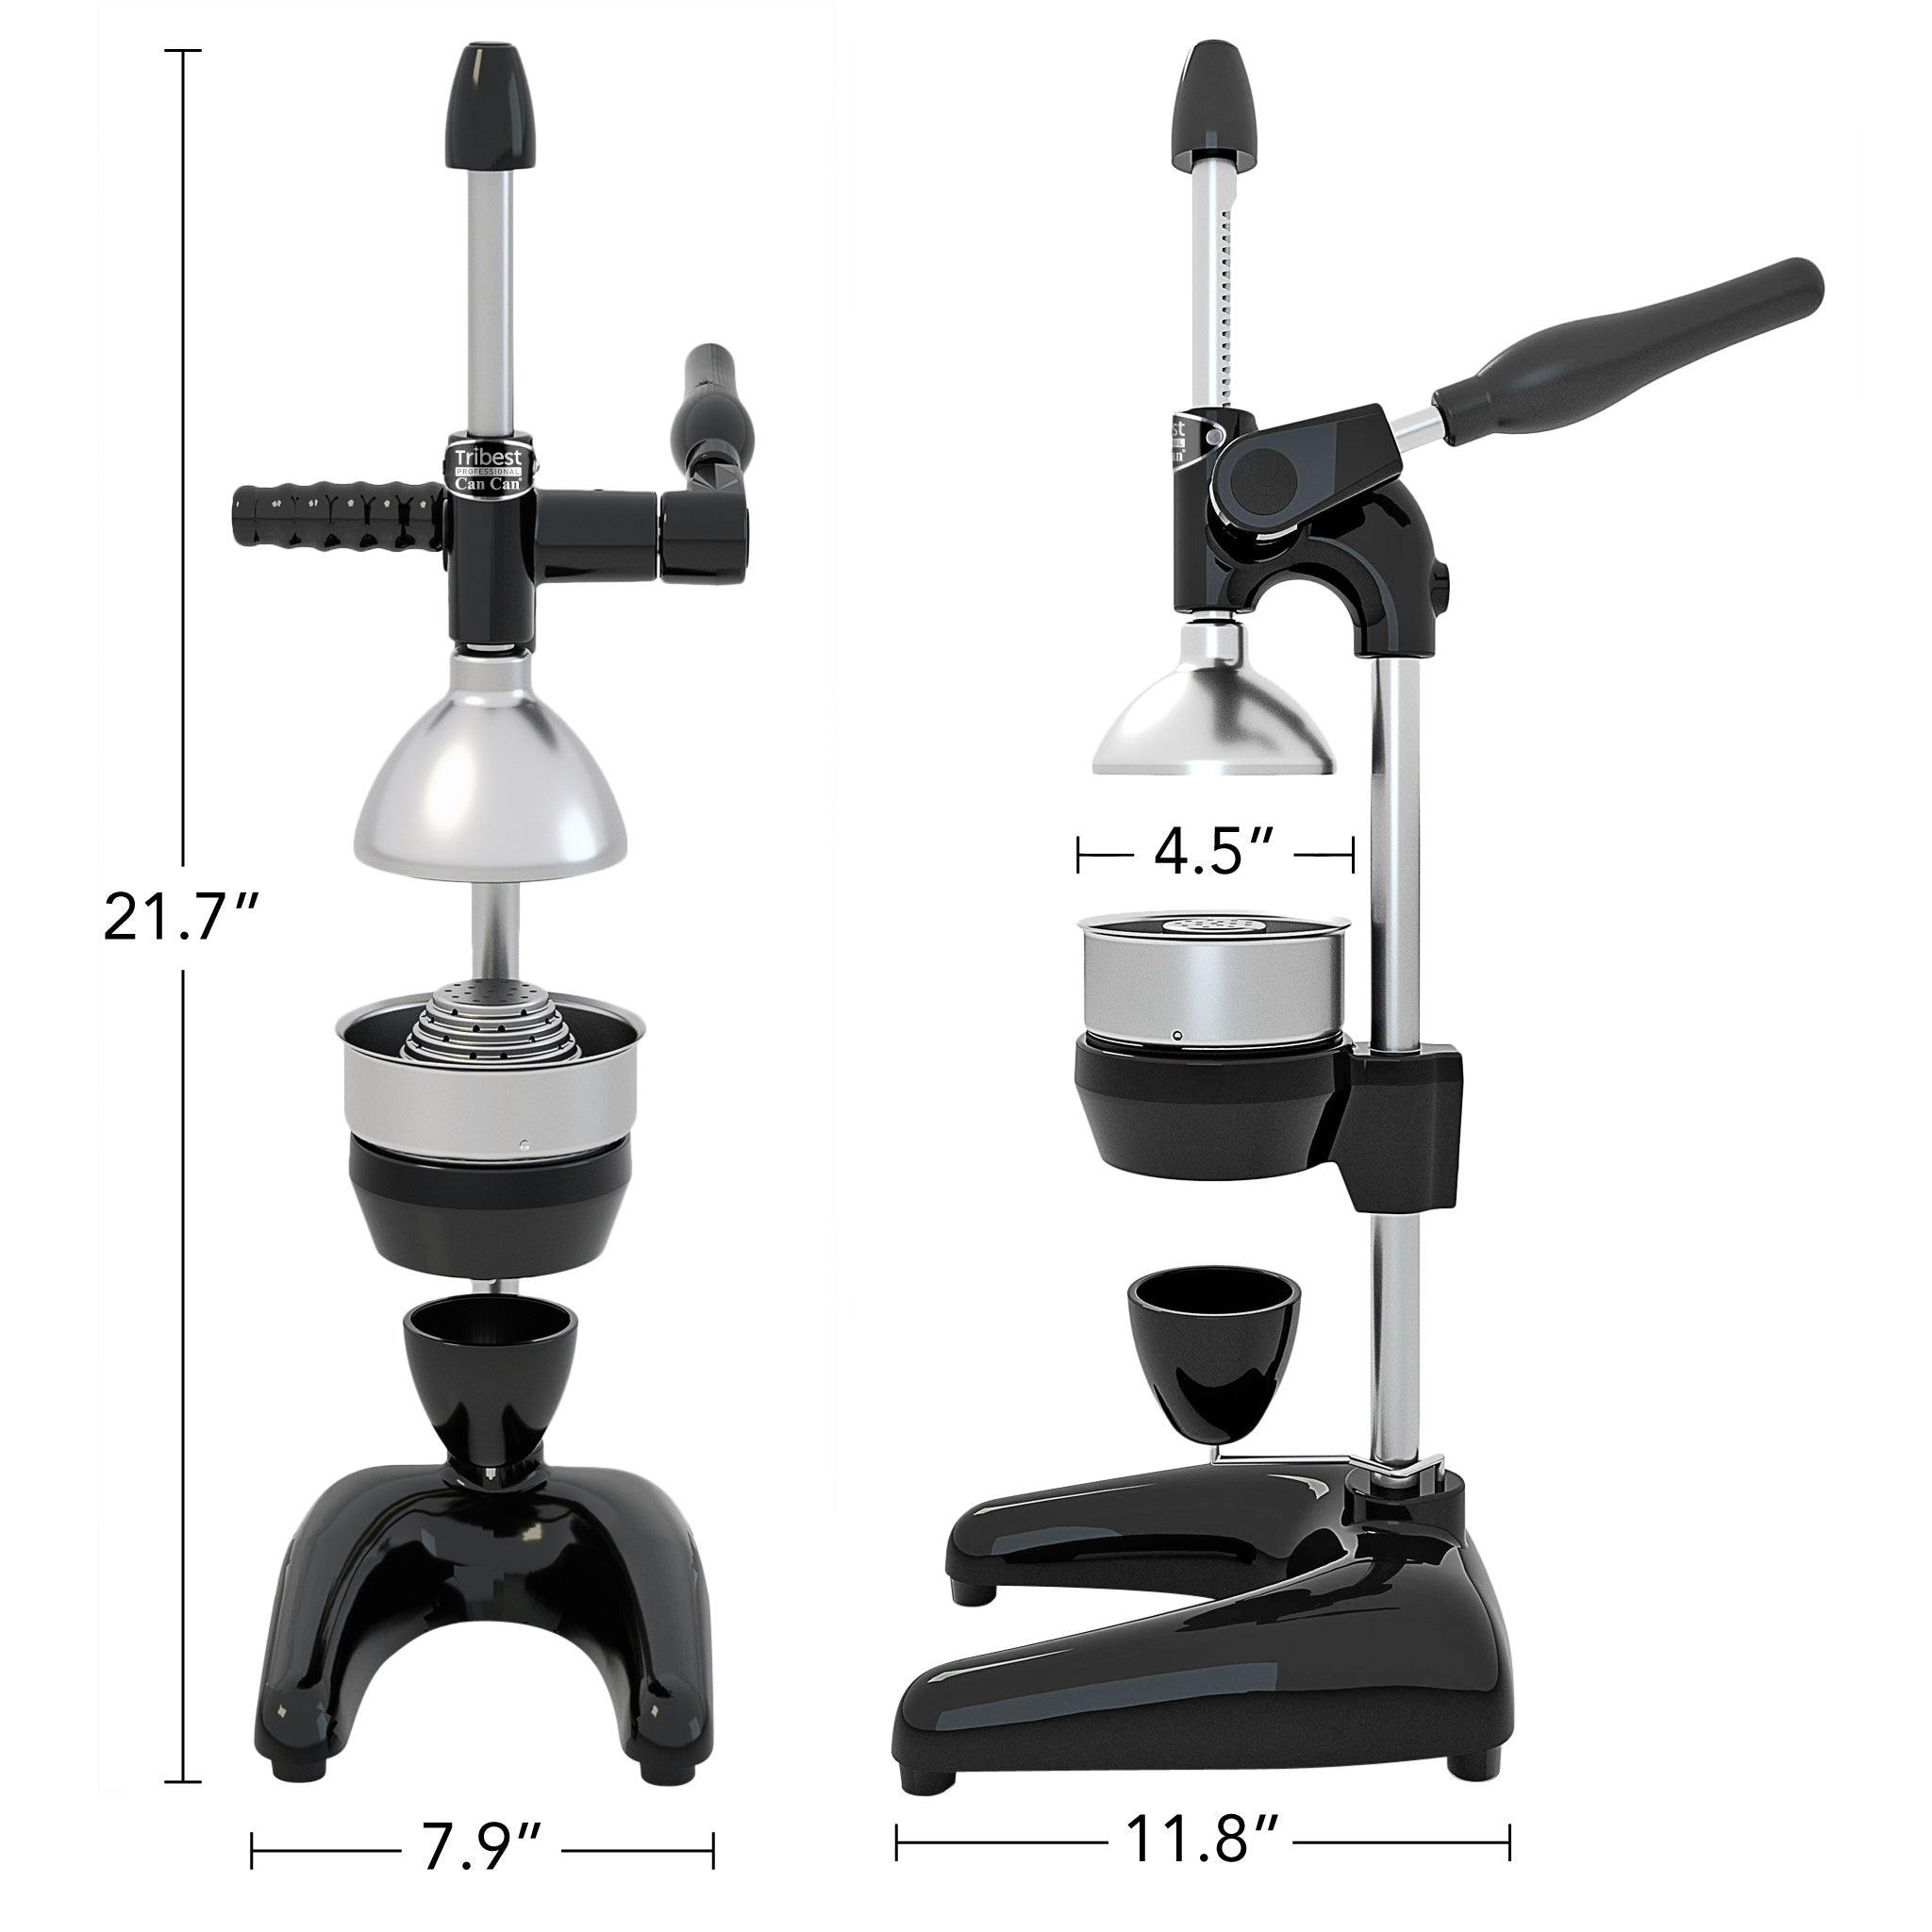 "Tribest Professional Cancan Manual Pomegranate Juice Press MJP-105 in Black. 21.7"" x 7.9"" x 11.8"""